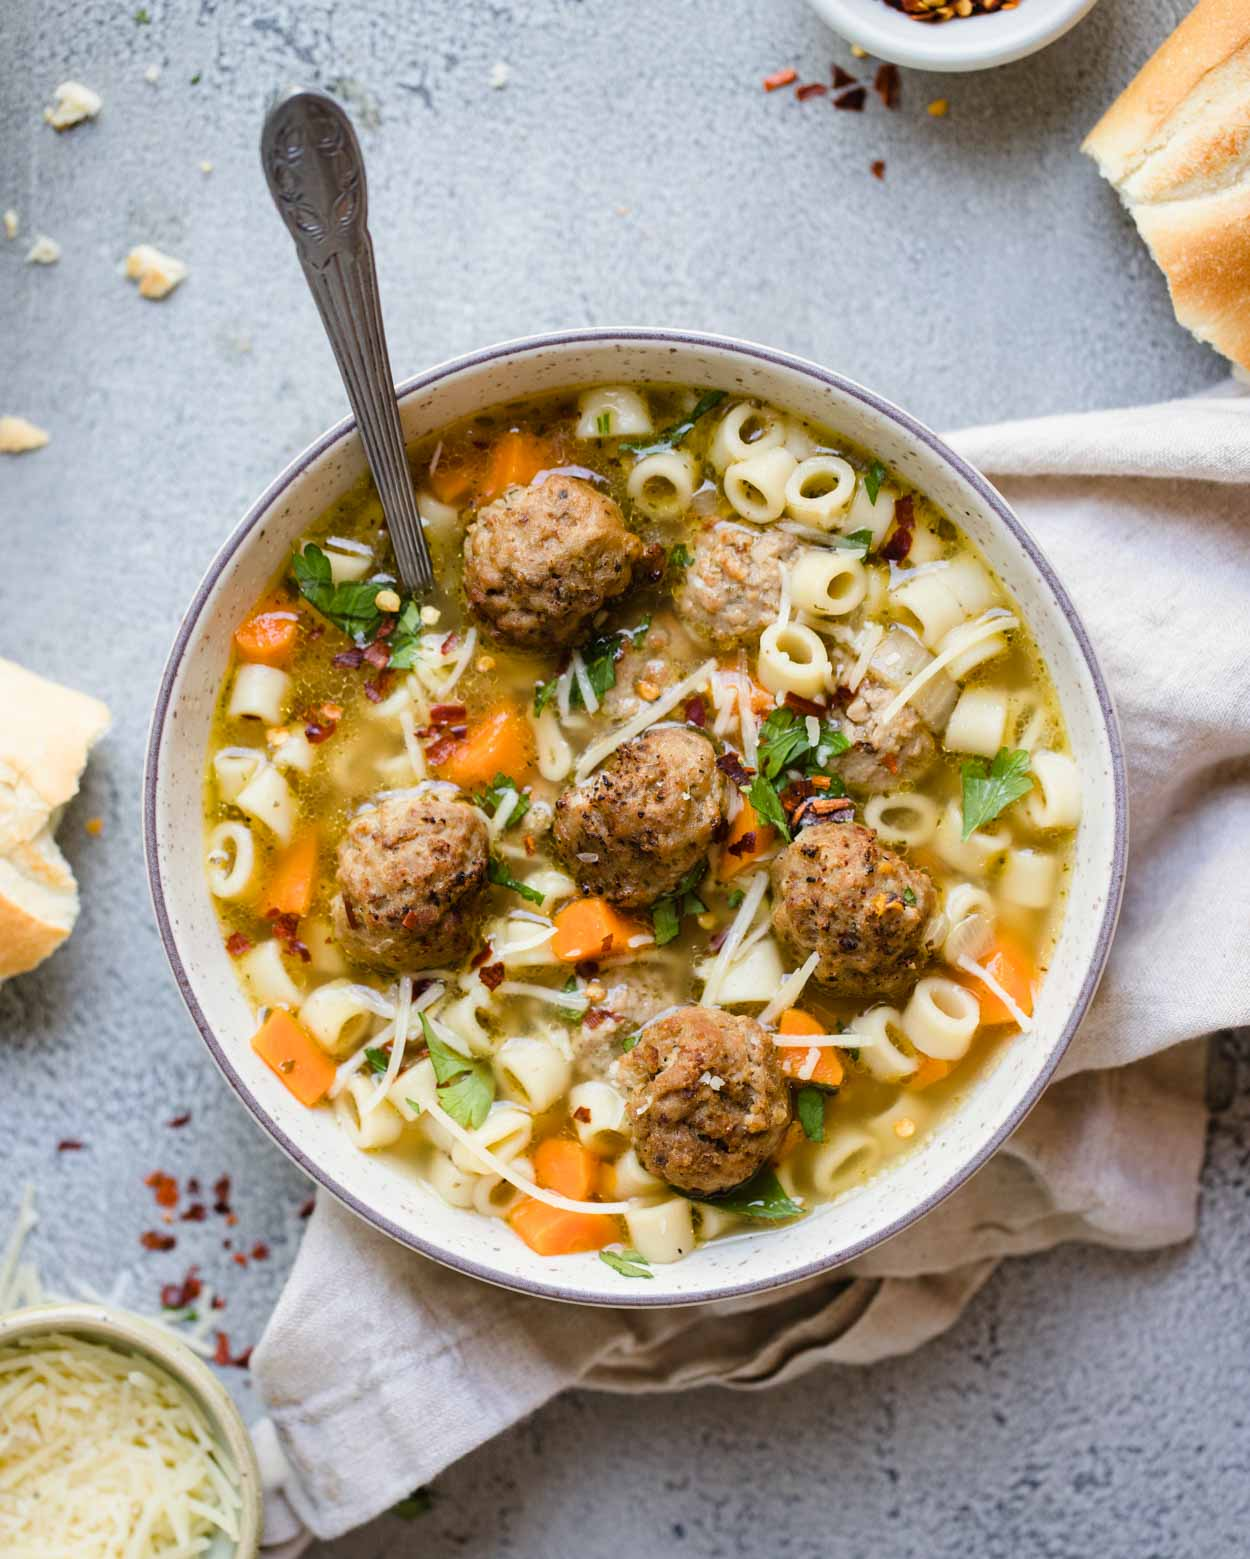 beige round bowl filled with pasta soup and meatballs